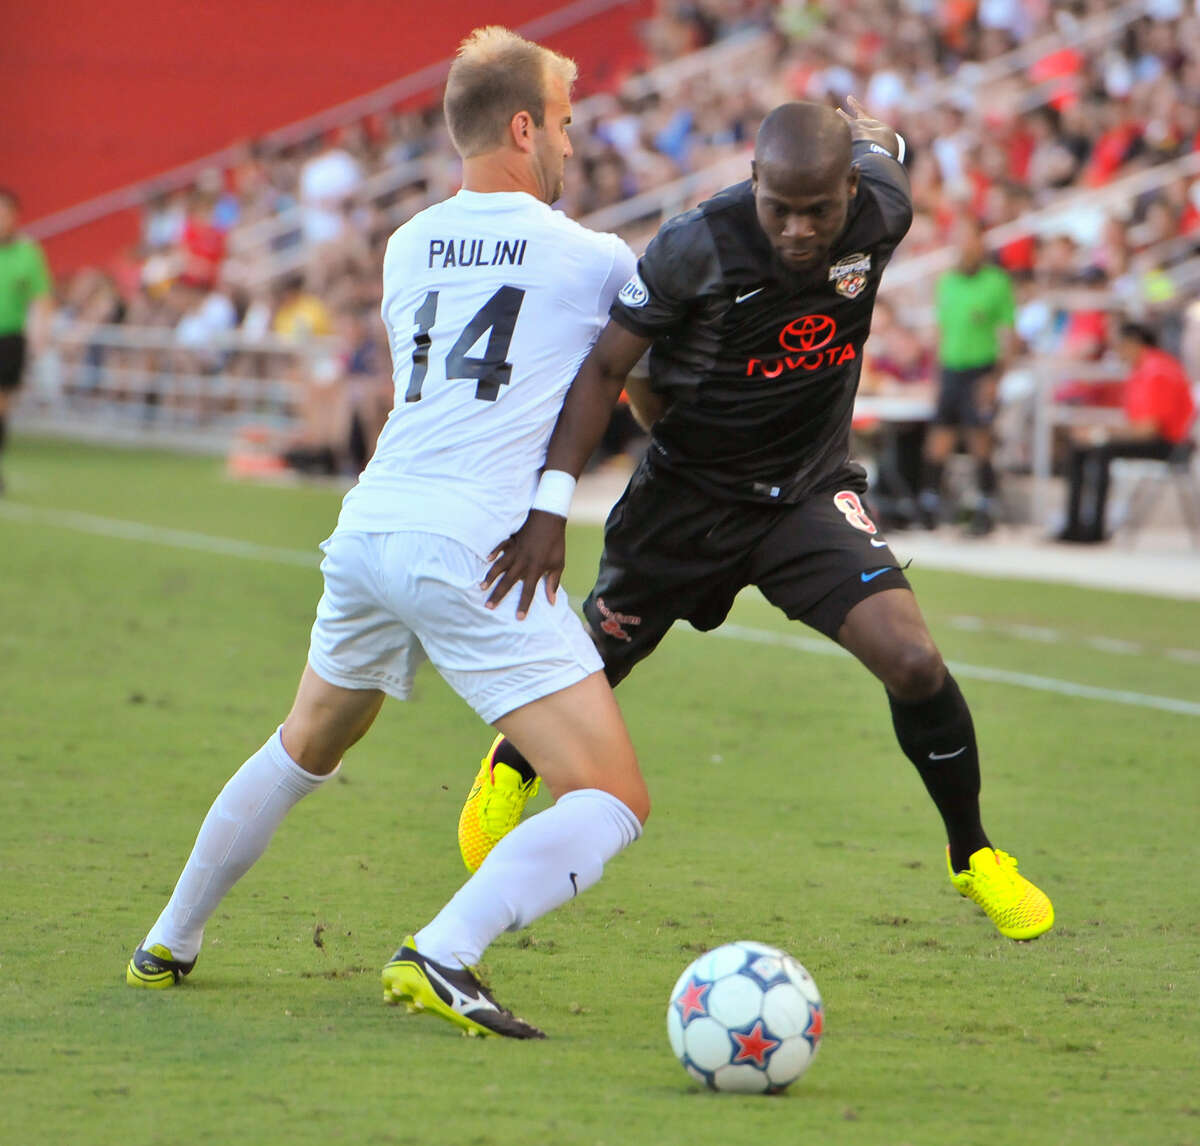 Billy Forbes (right) of the Scorpions works to get around Atlanta's Lucas Paulini on Saturday. The Scorpions are unbeaten in their last seven matches at Toyota Field.